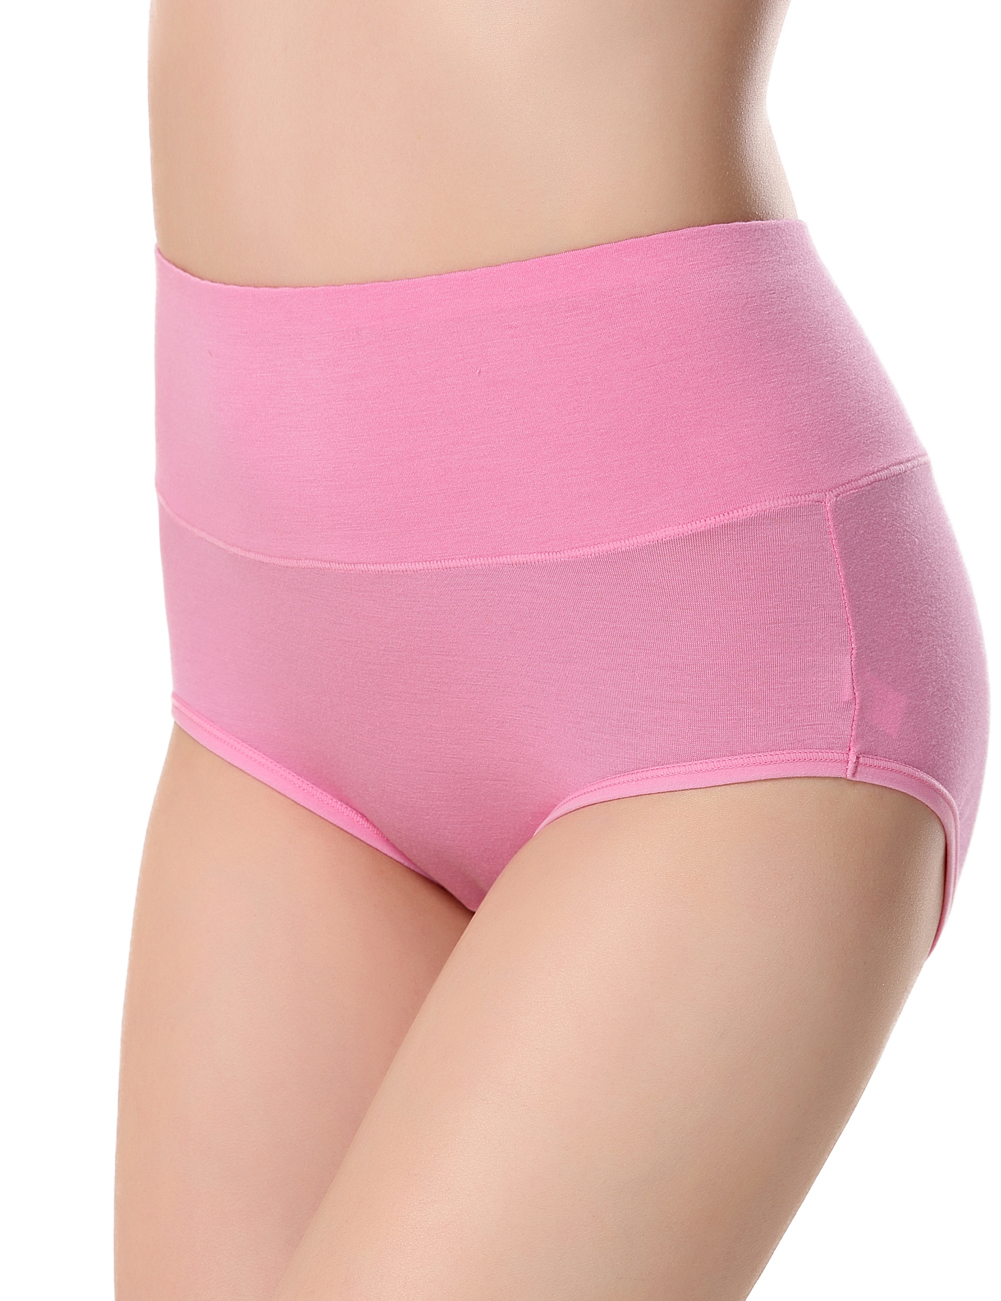 //cdn.affectcloud.com/hexinfashion/upload/imgs/Underwear/Tanga/D180007-RD5/D180007-RD5-201911055dc123428236f.jpg